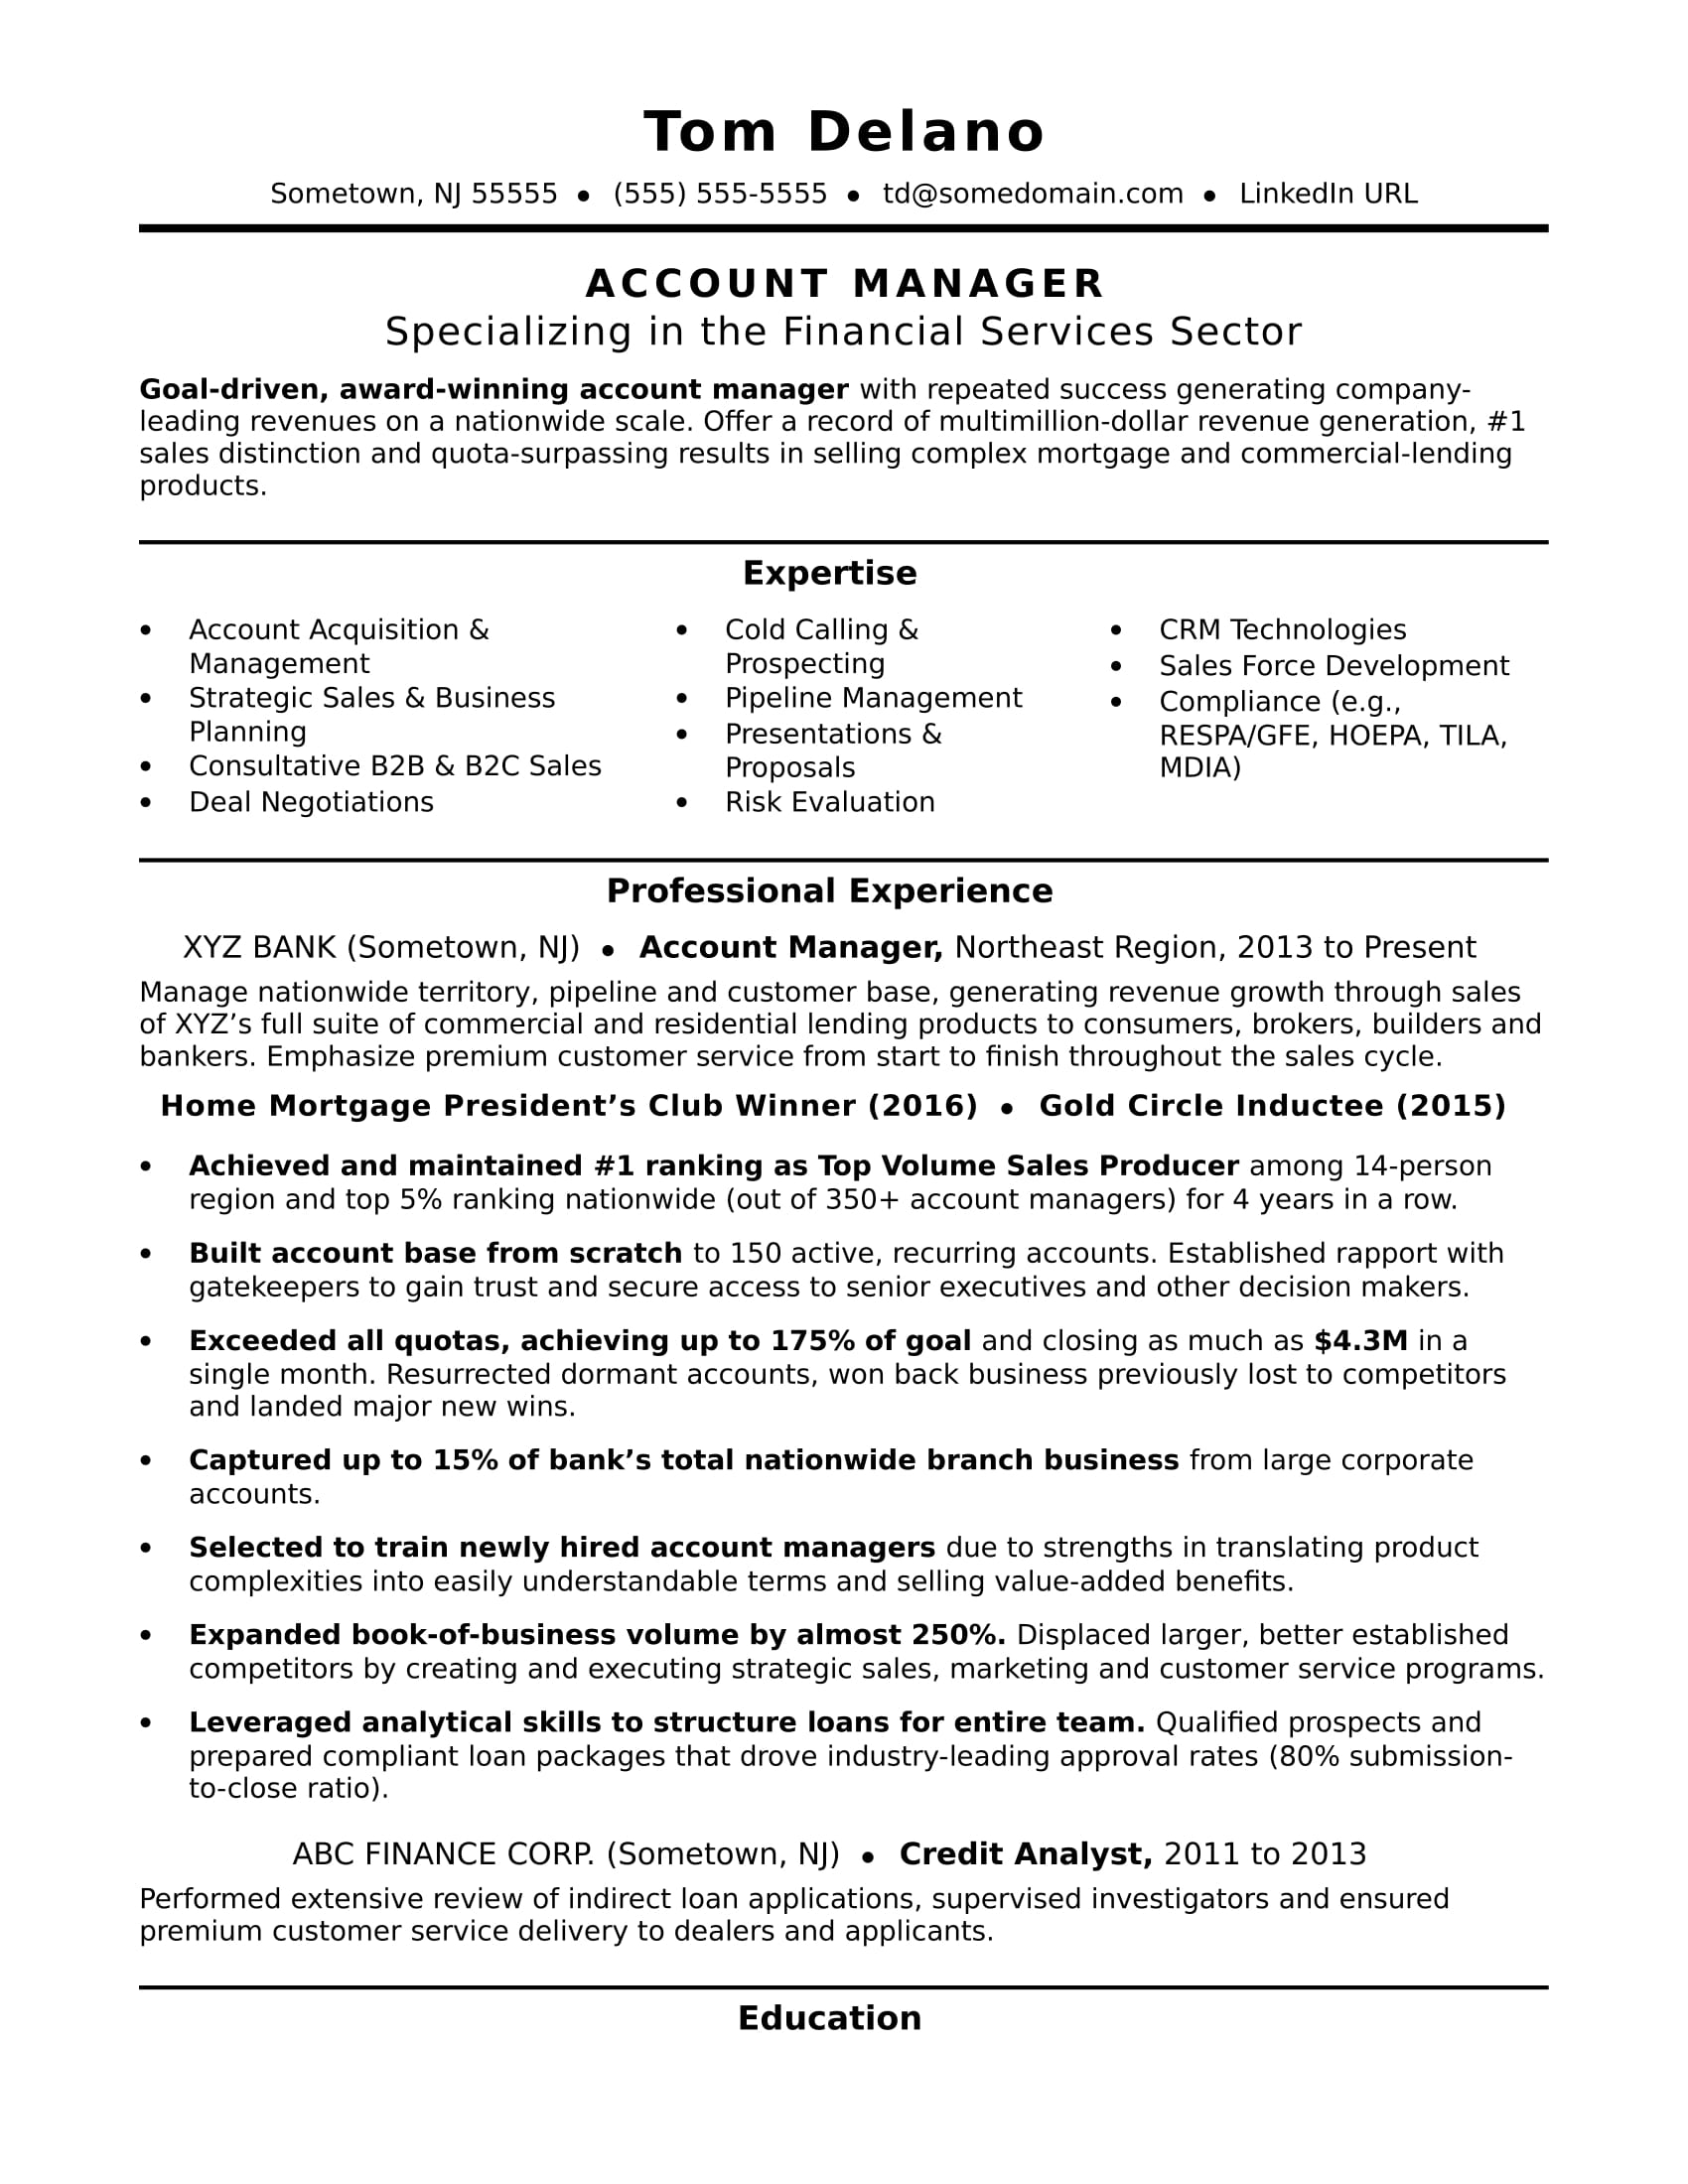 Account Manager Resume Sample  Top Sample Resumes